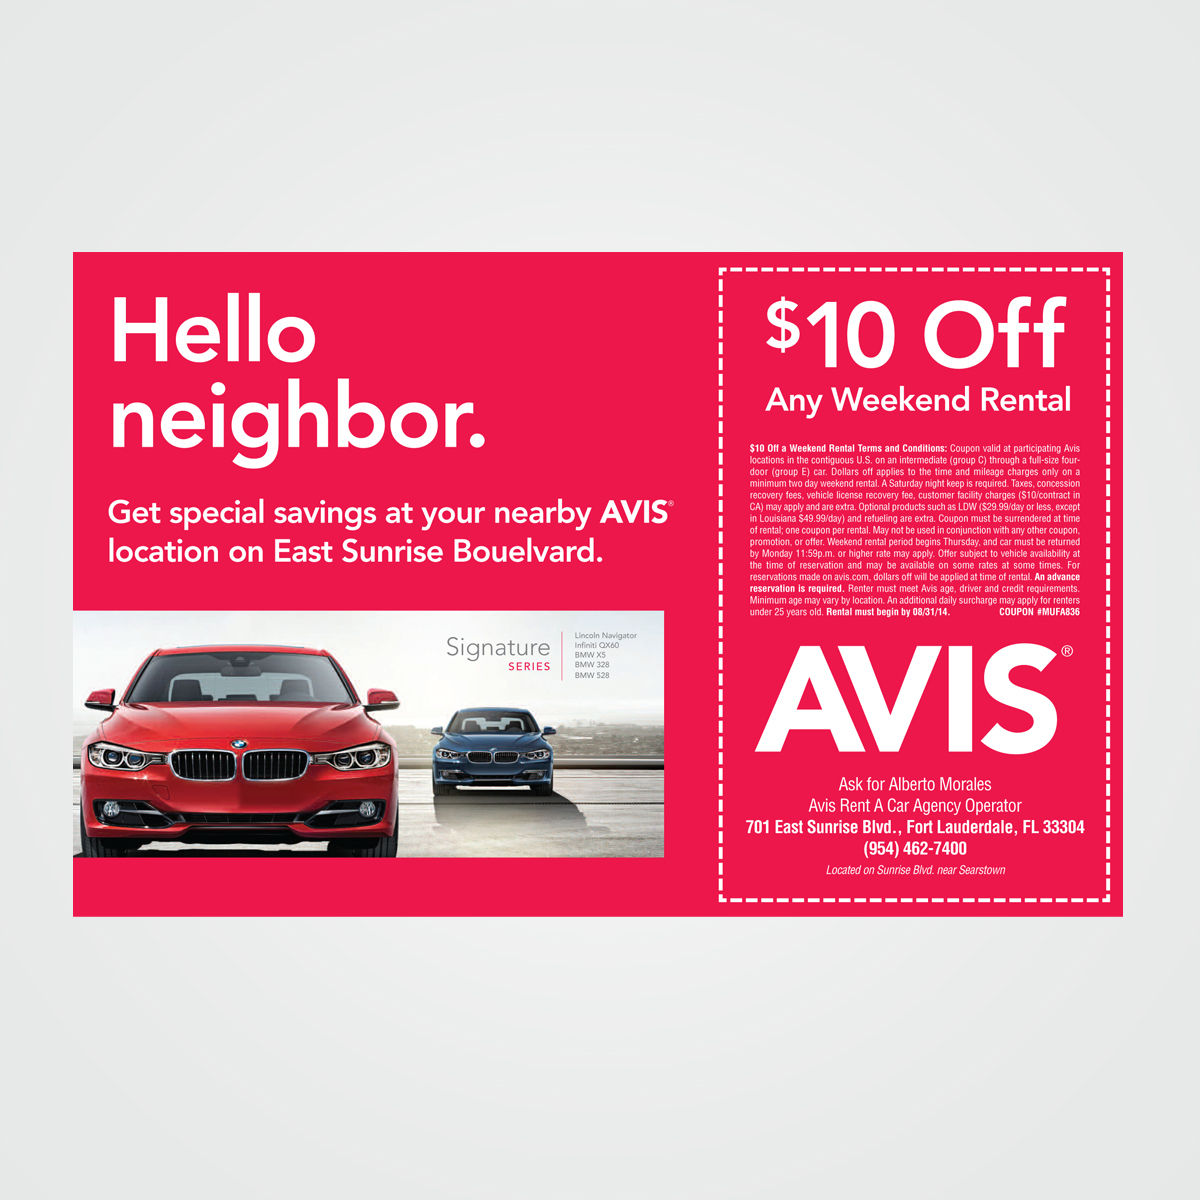 Local campaign for AVIS targeting nearby residents and special interest groups such as boaters